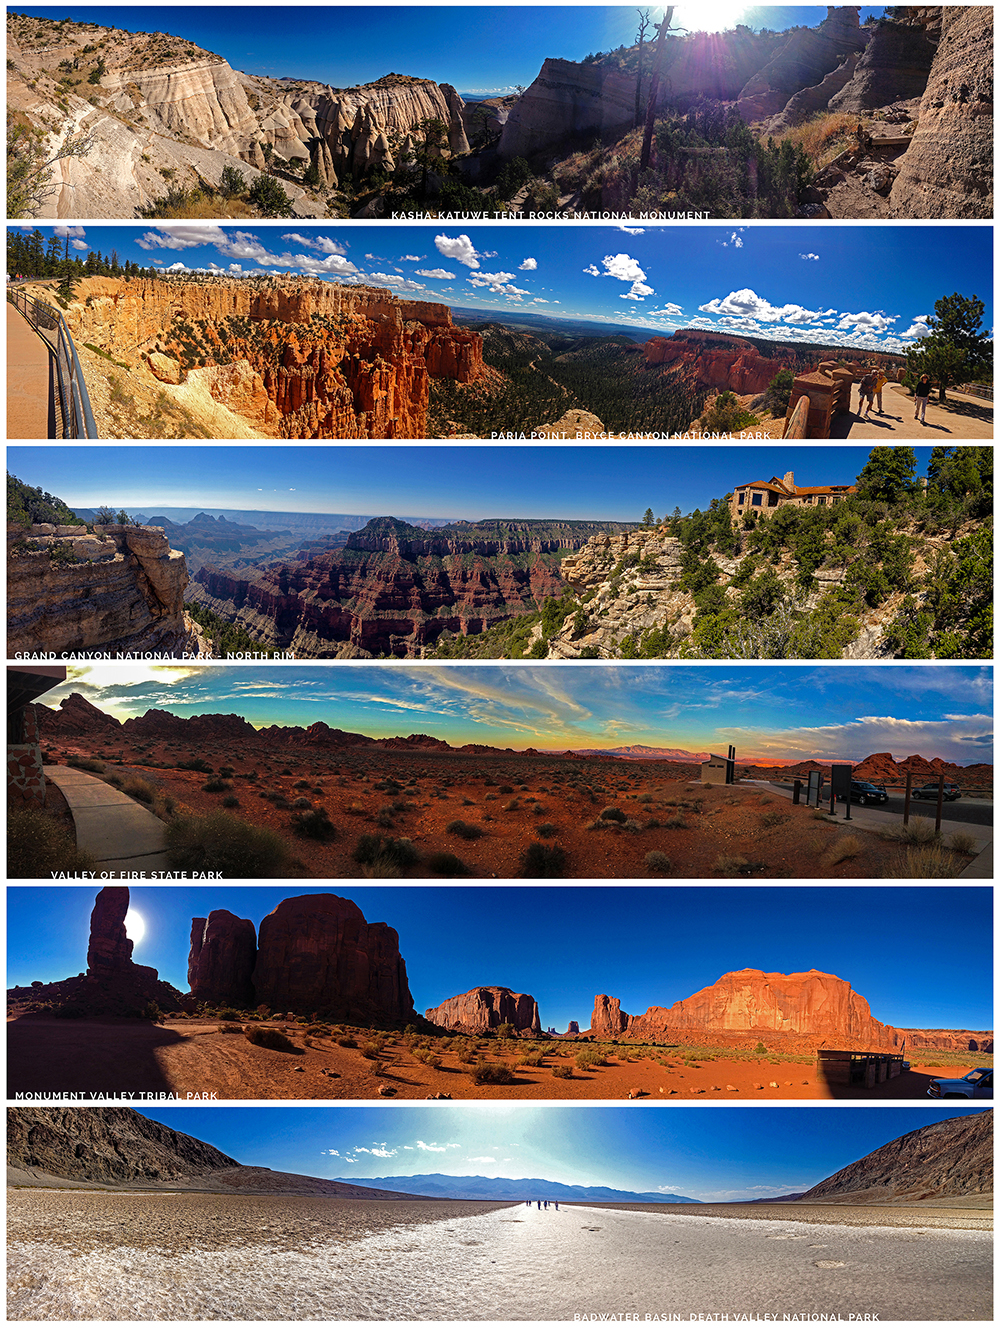 American Southwest 2014 Panorama Poster_01_2